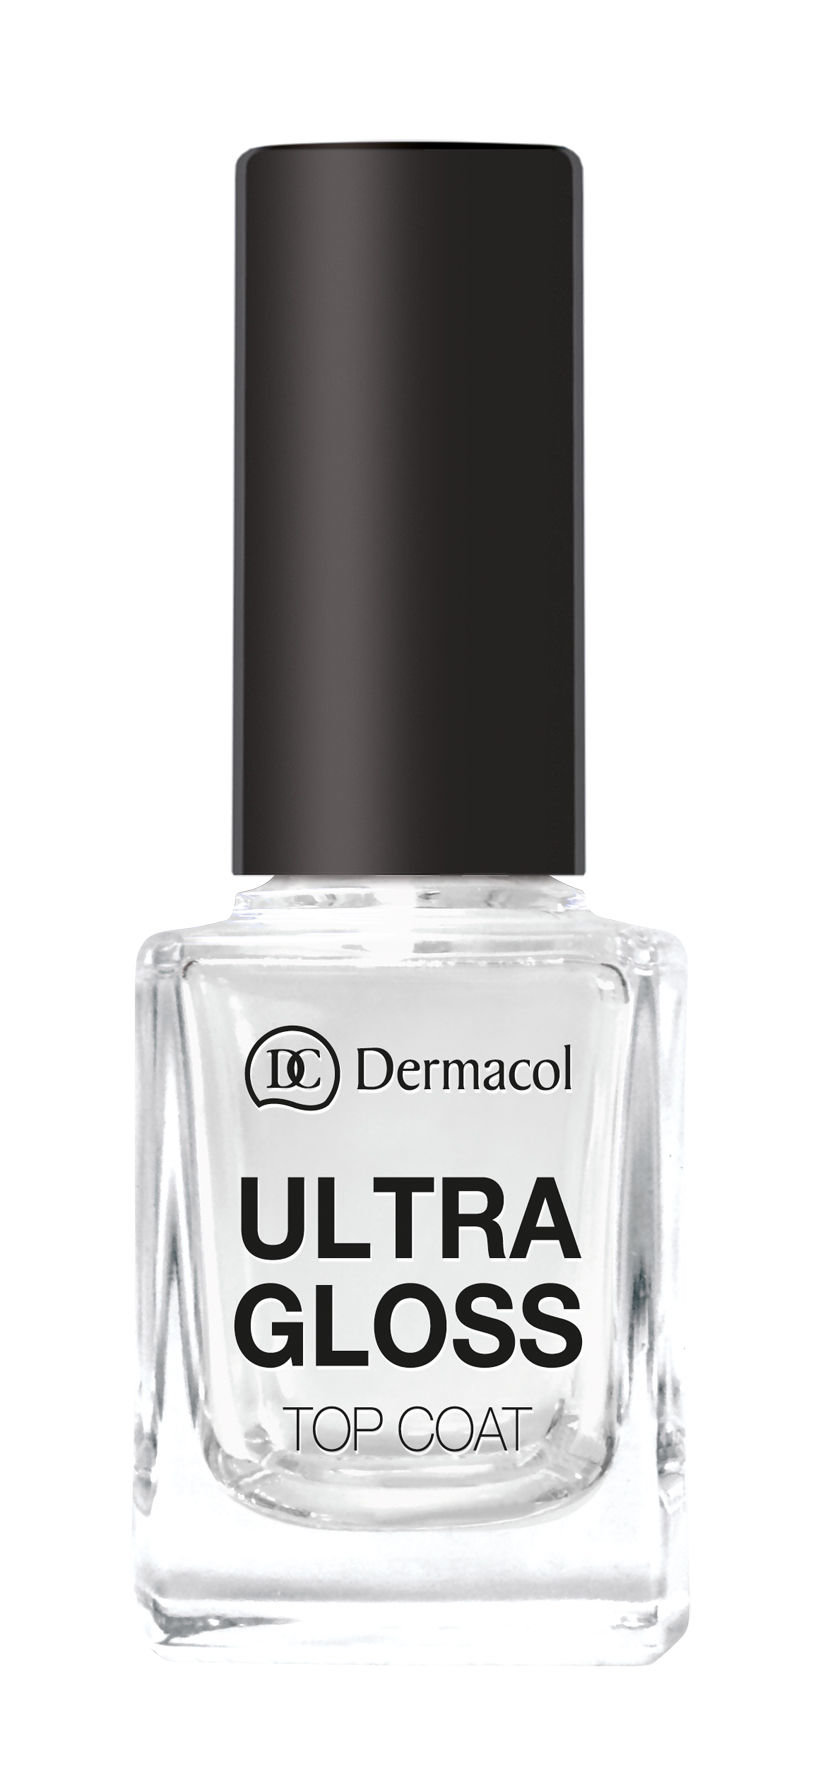 Dermacol Ultra Gloss  Lak na nehty, W, 11 ml